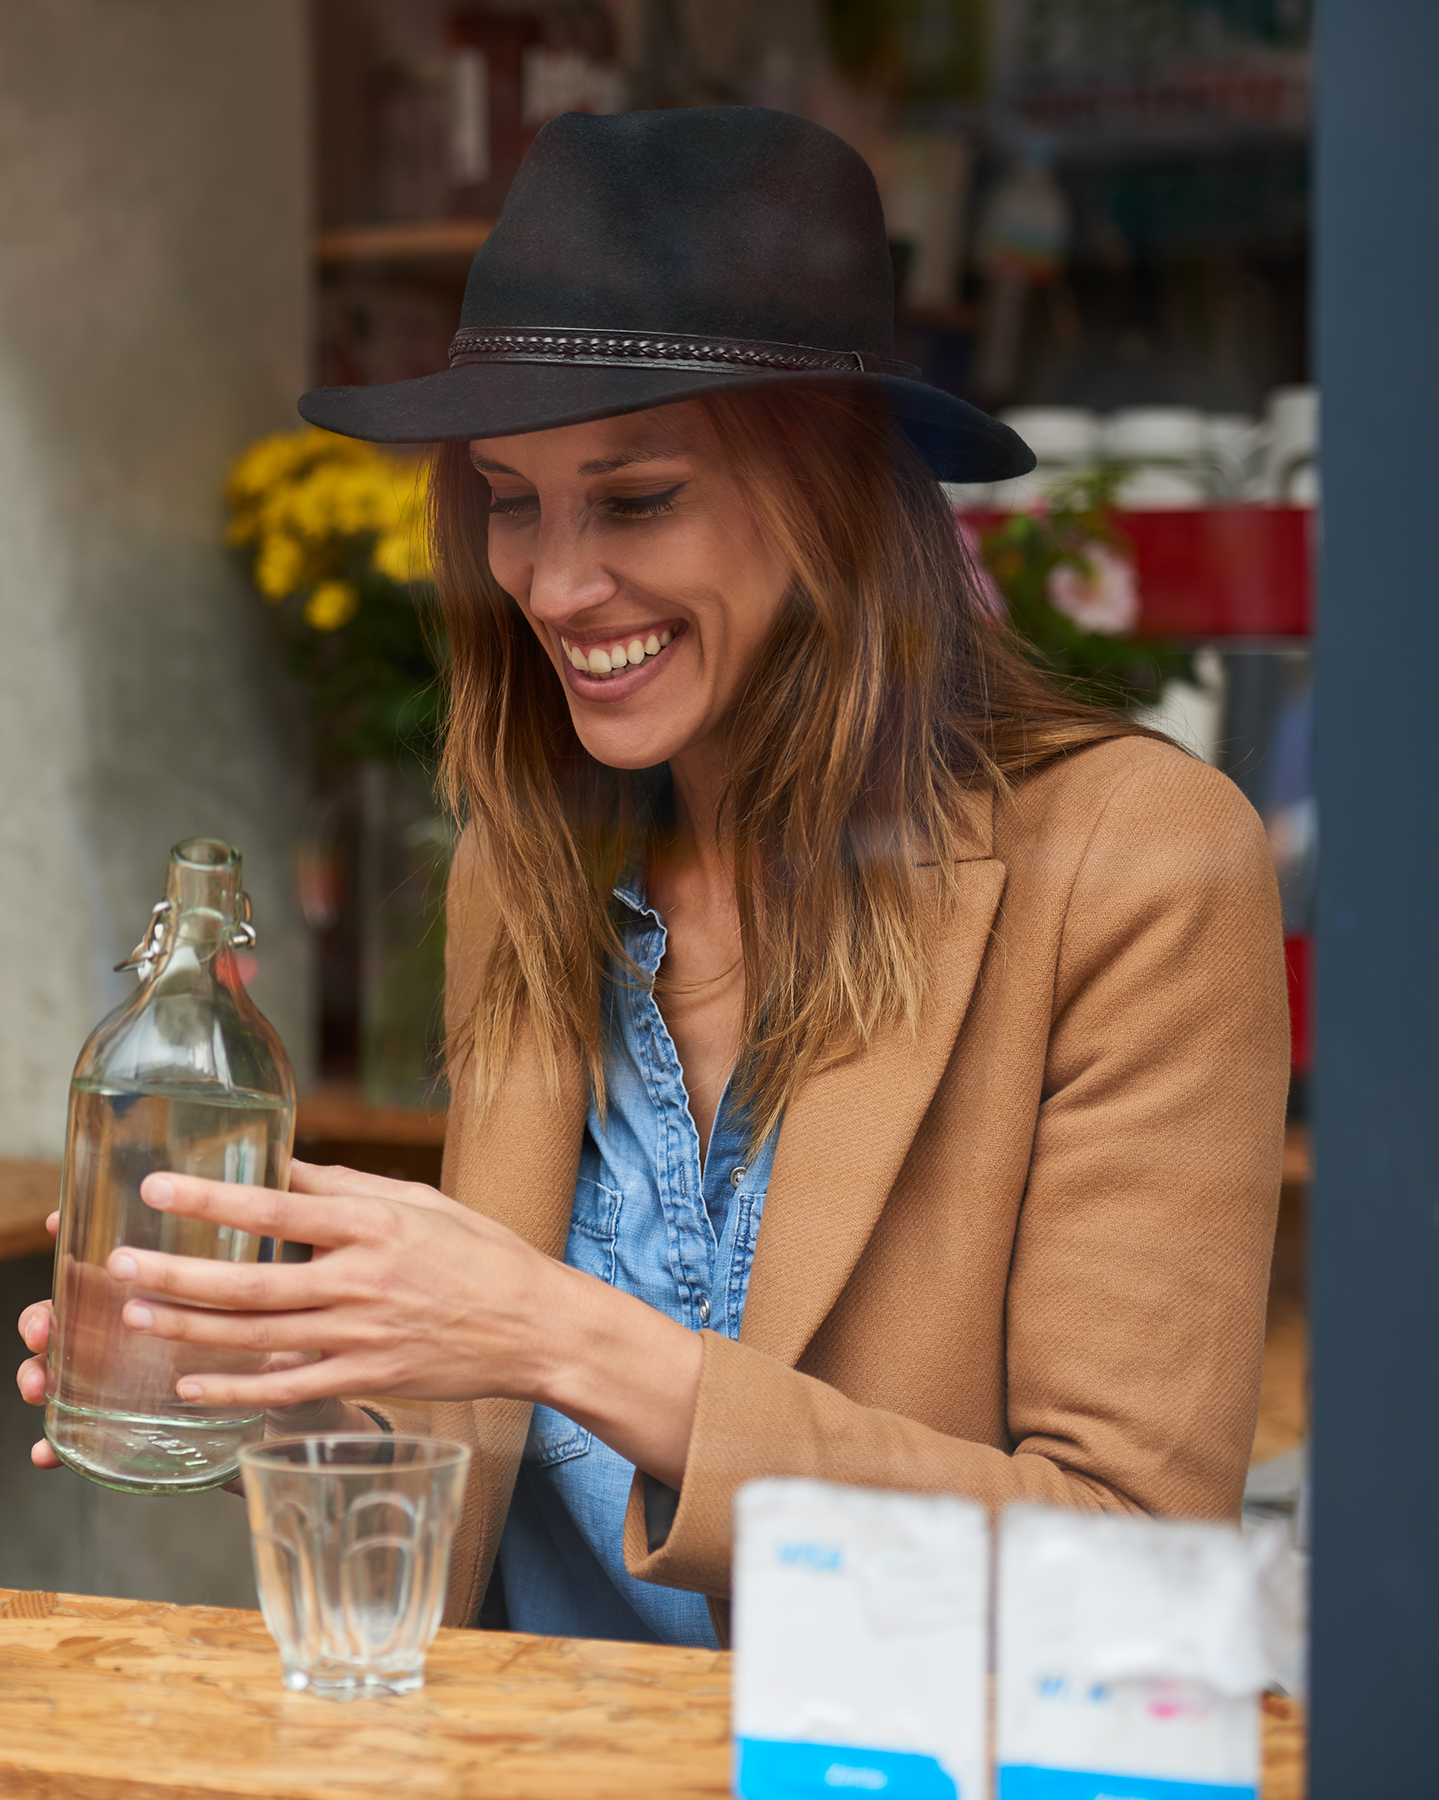 photograph of woman through a cafe window